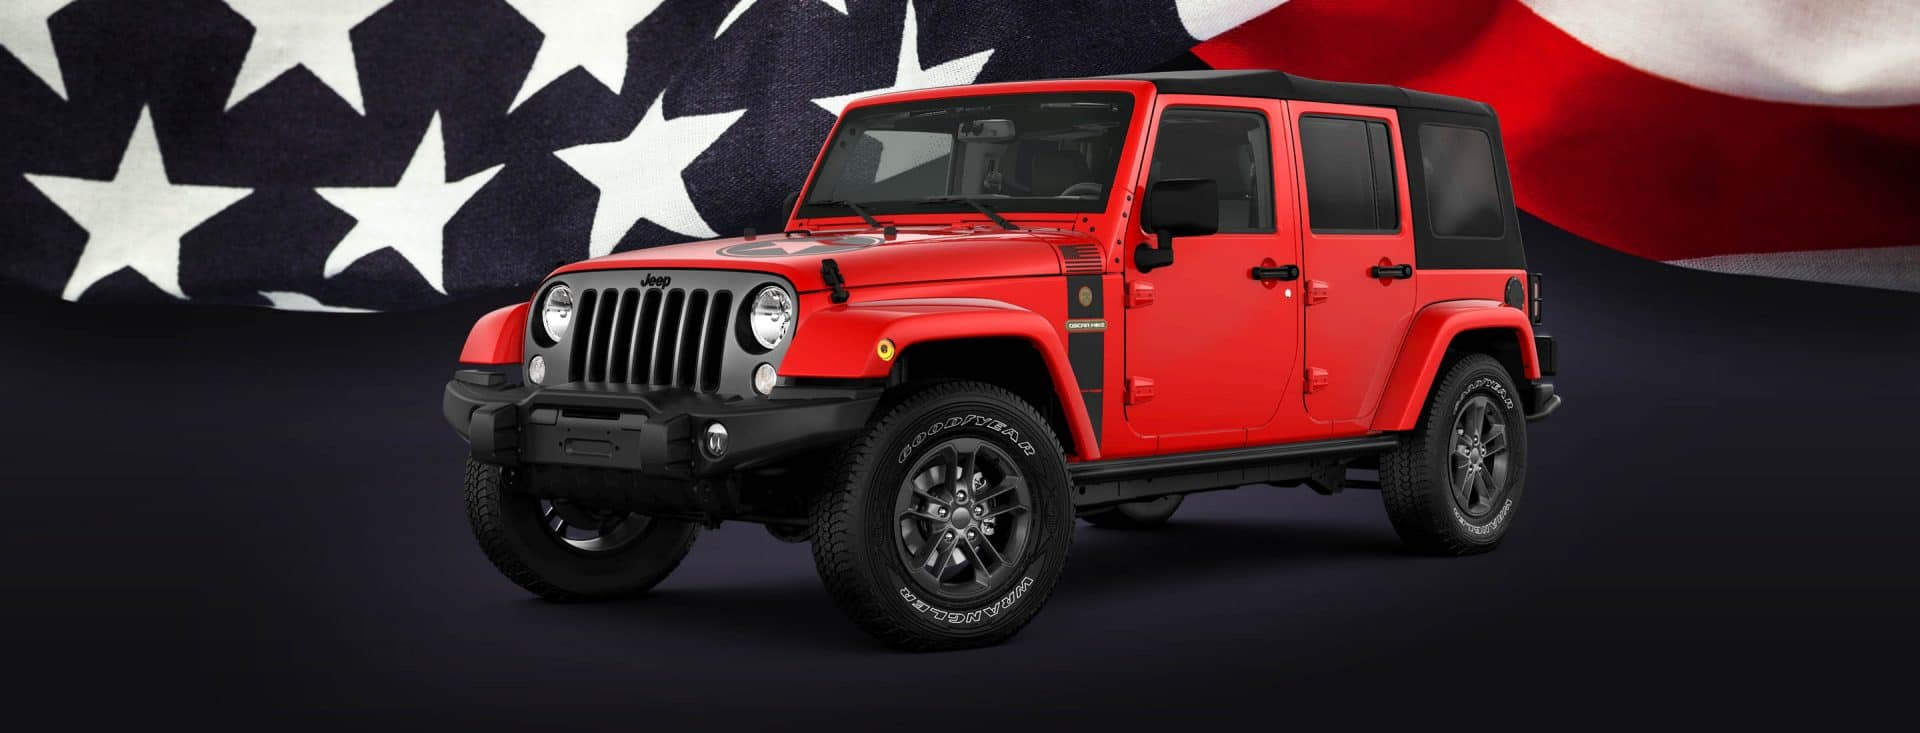 2018 jeep wrangler jk freedom limited edition suv. Black Bedroom Furniture Sets. Home Design Ideas